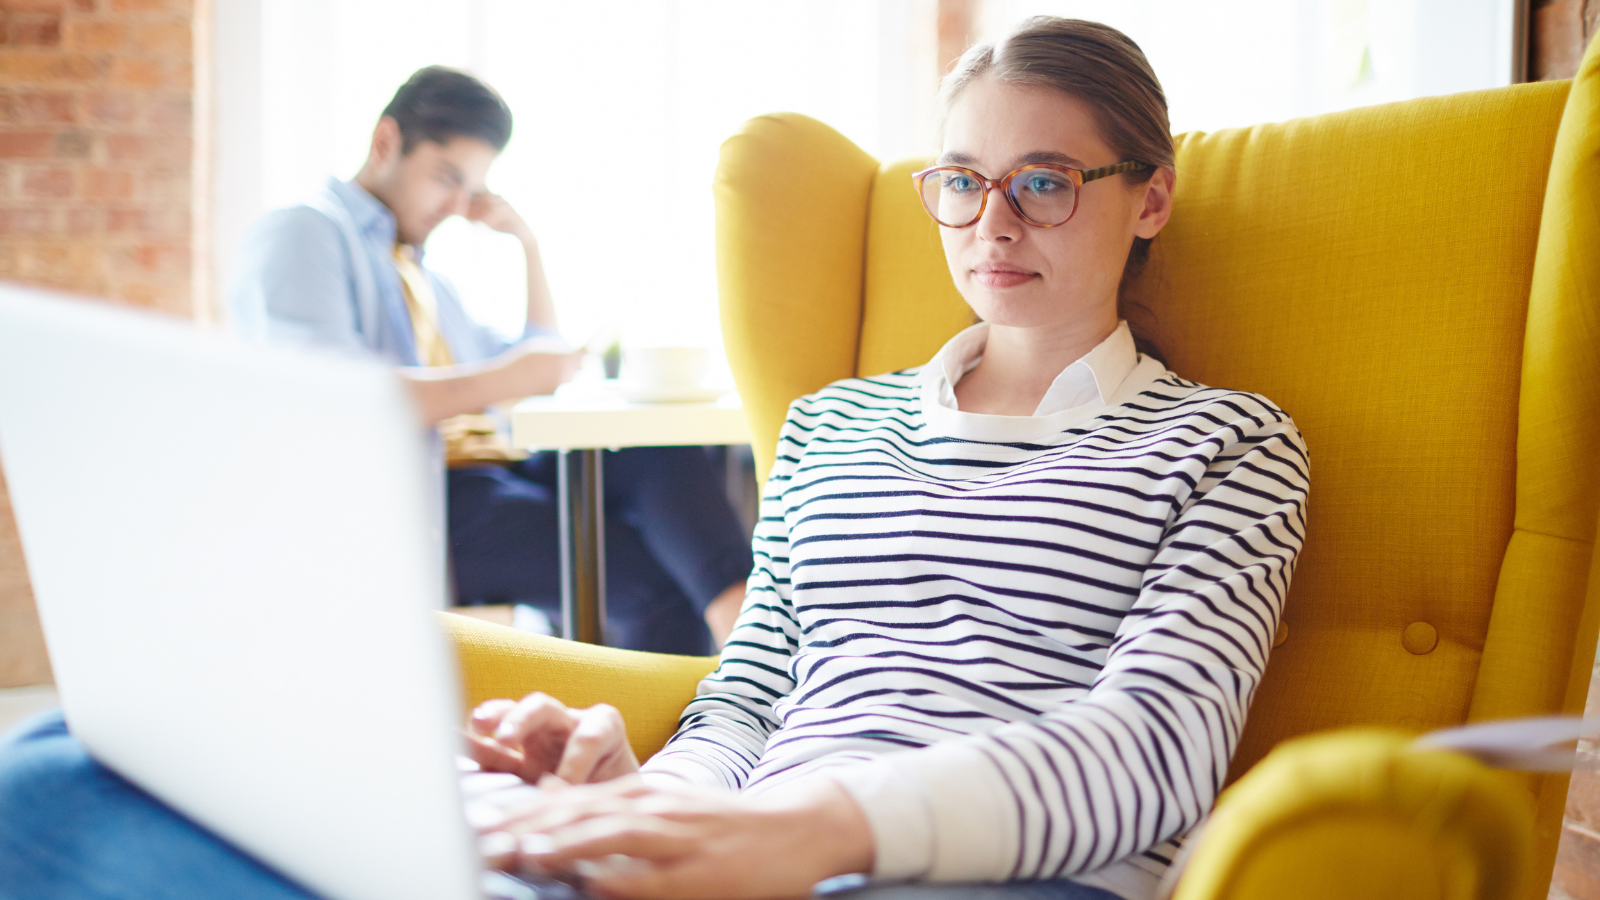 The 7 emails you should send every week to get ahead in your career